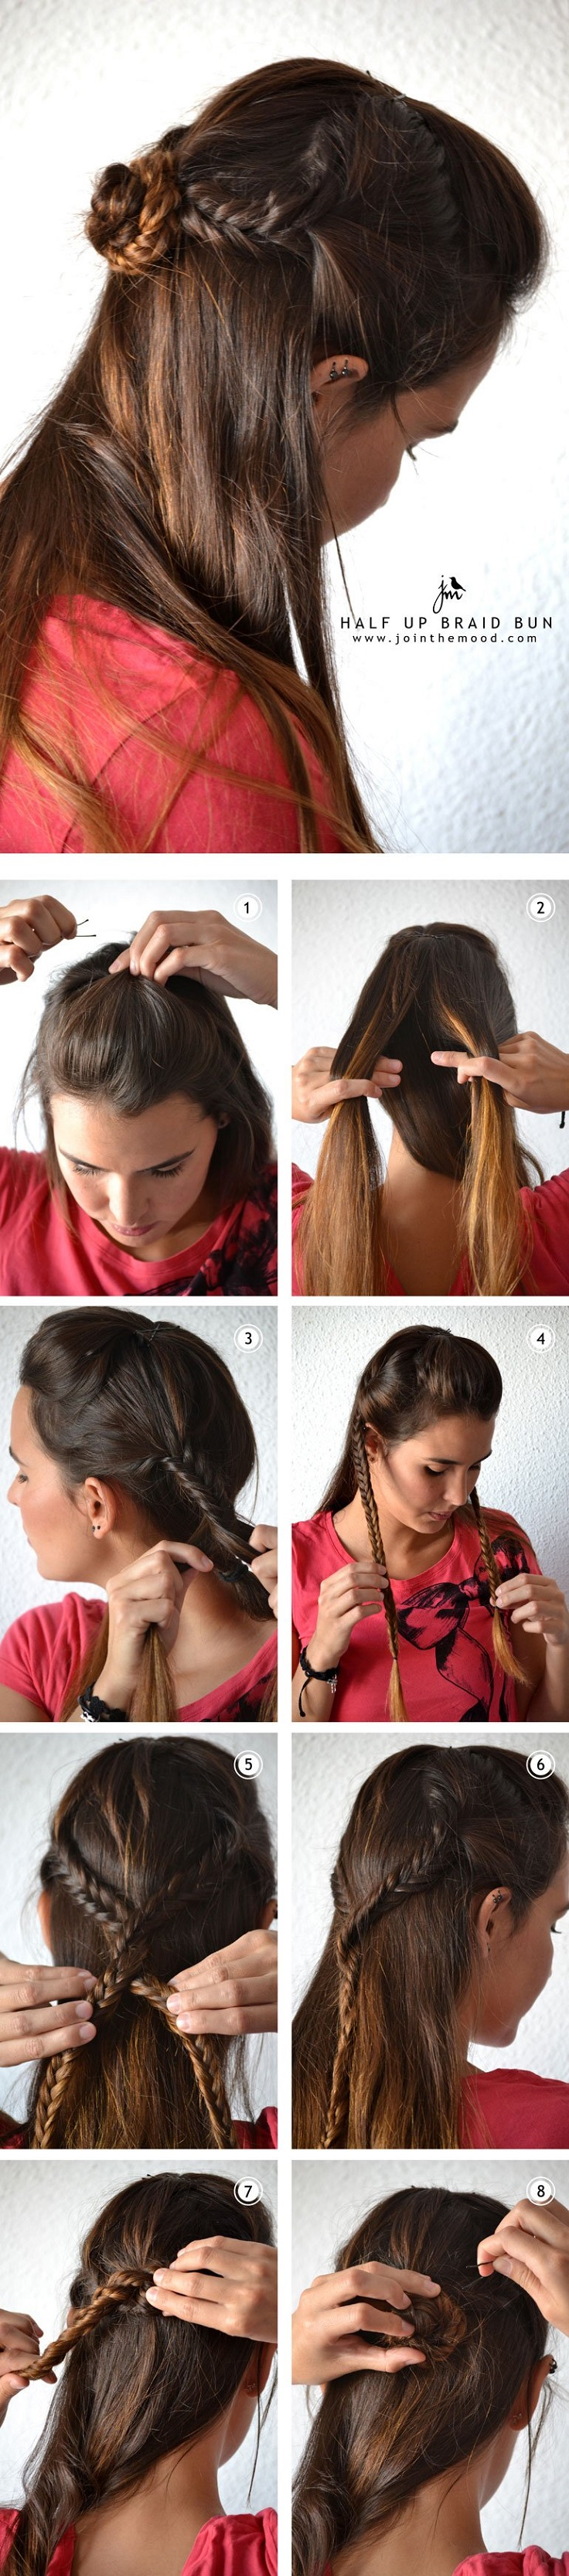 Half-Up-Braided-Bun